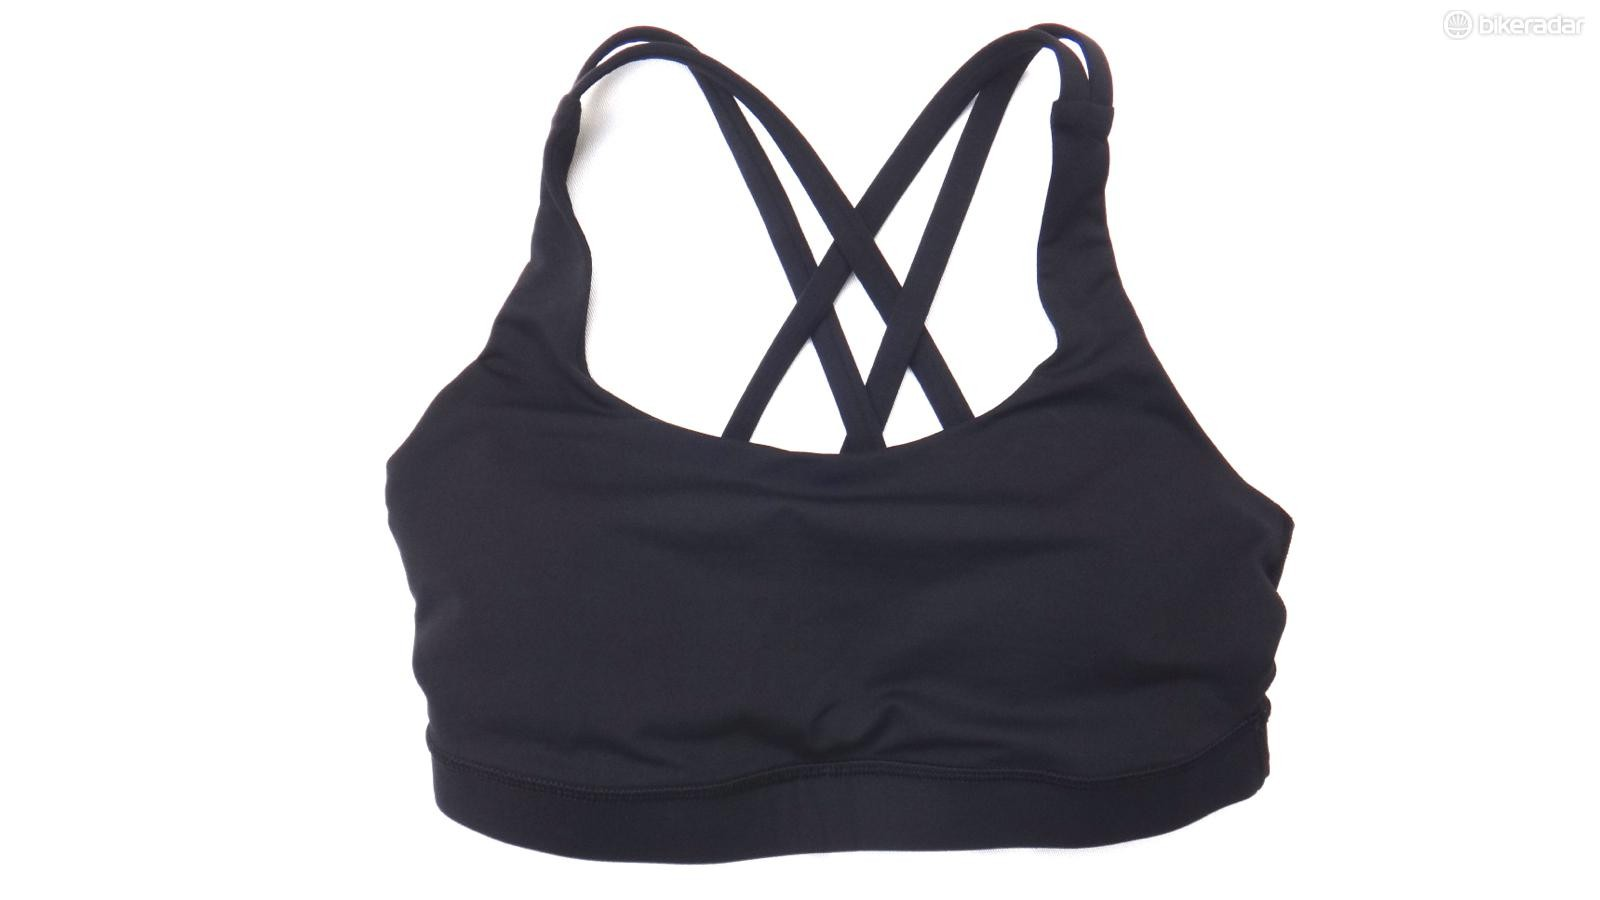 The Lululemon Energy bra is a great choice for smaller-busted women